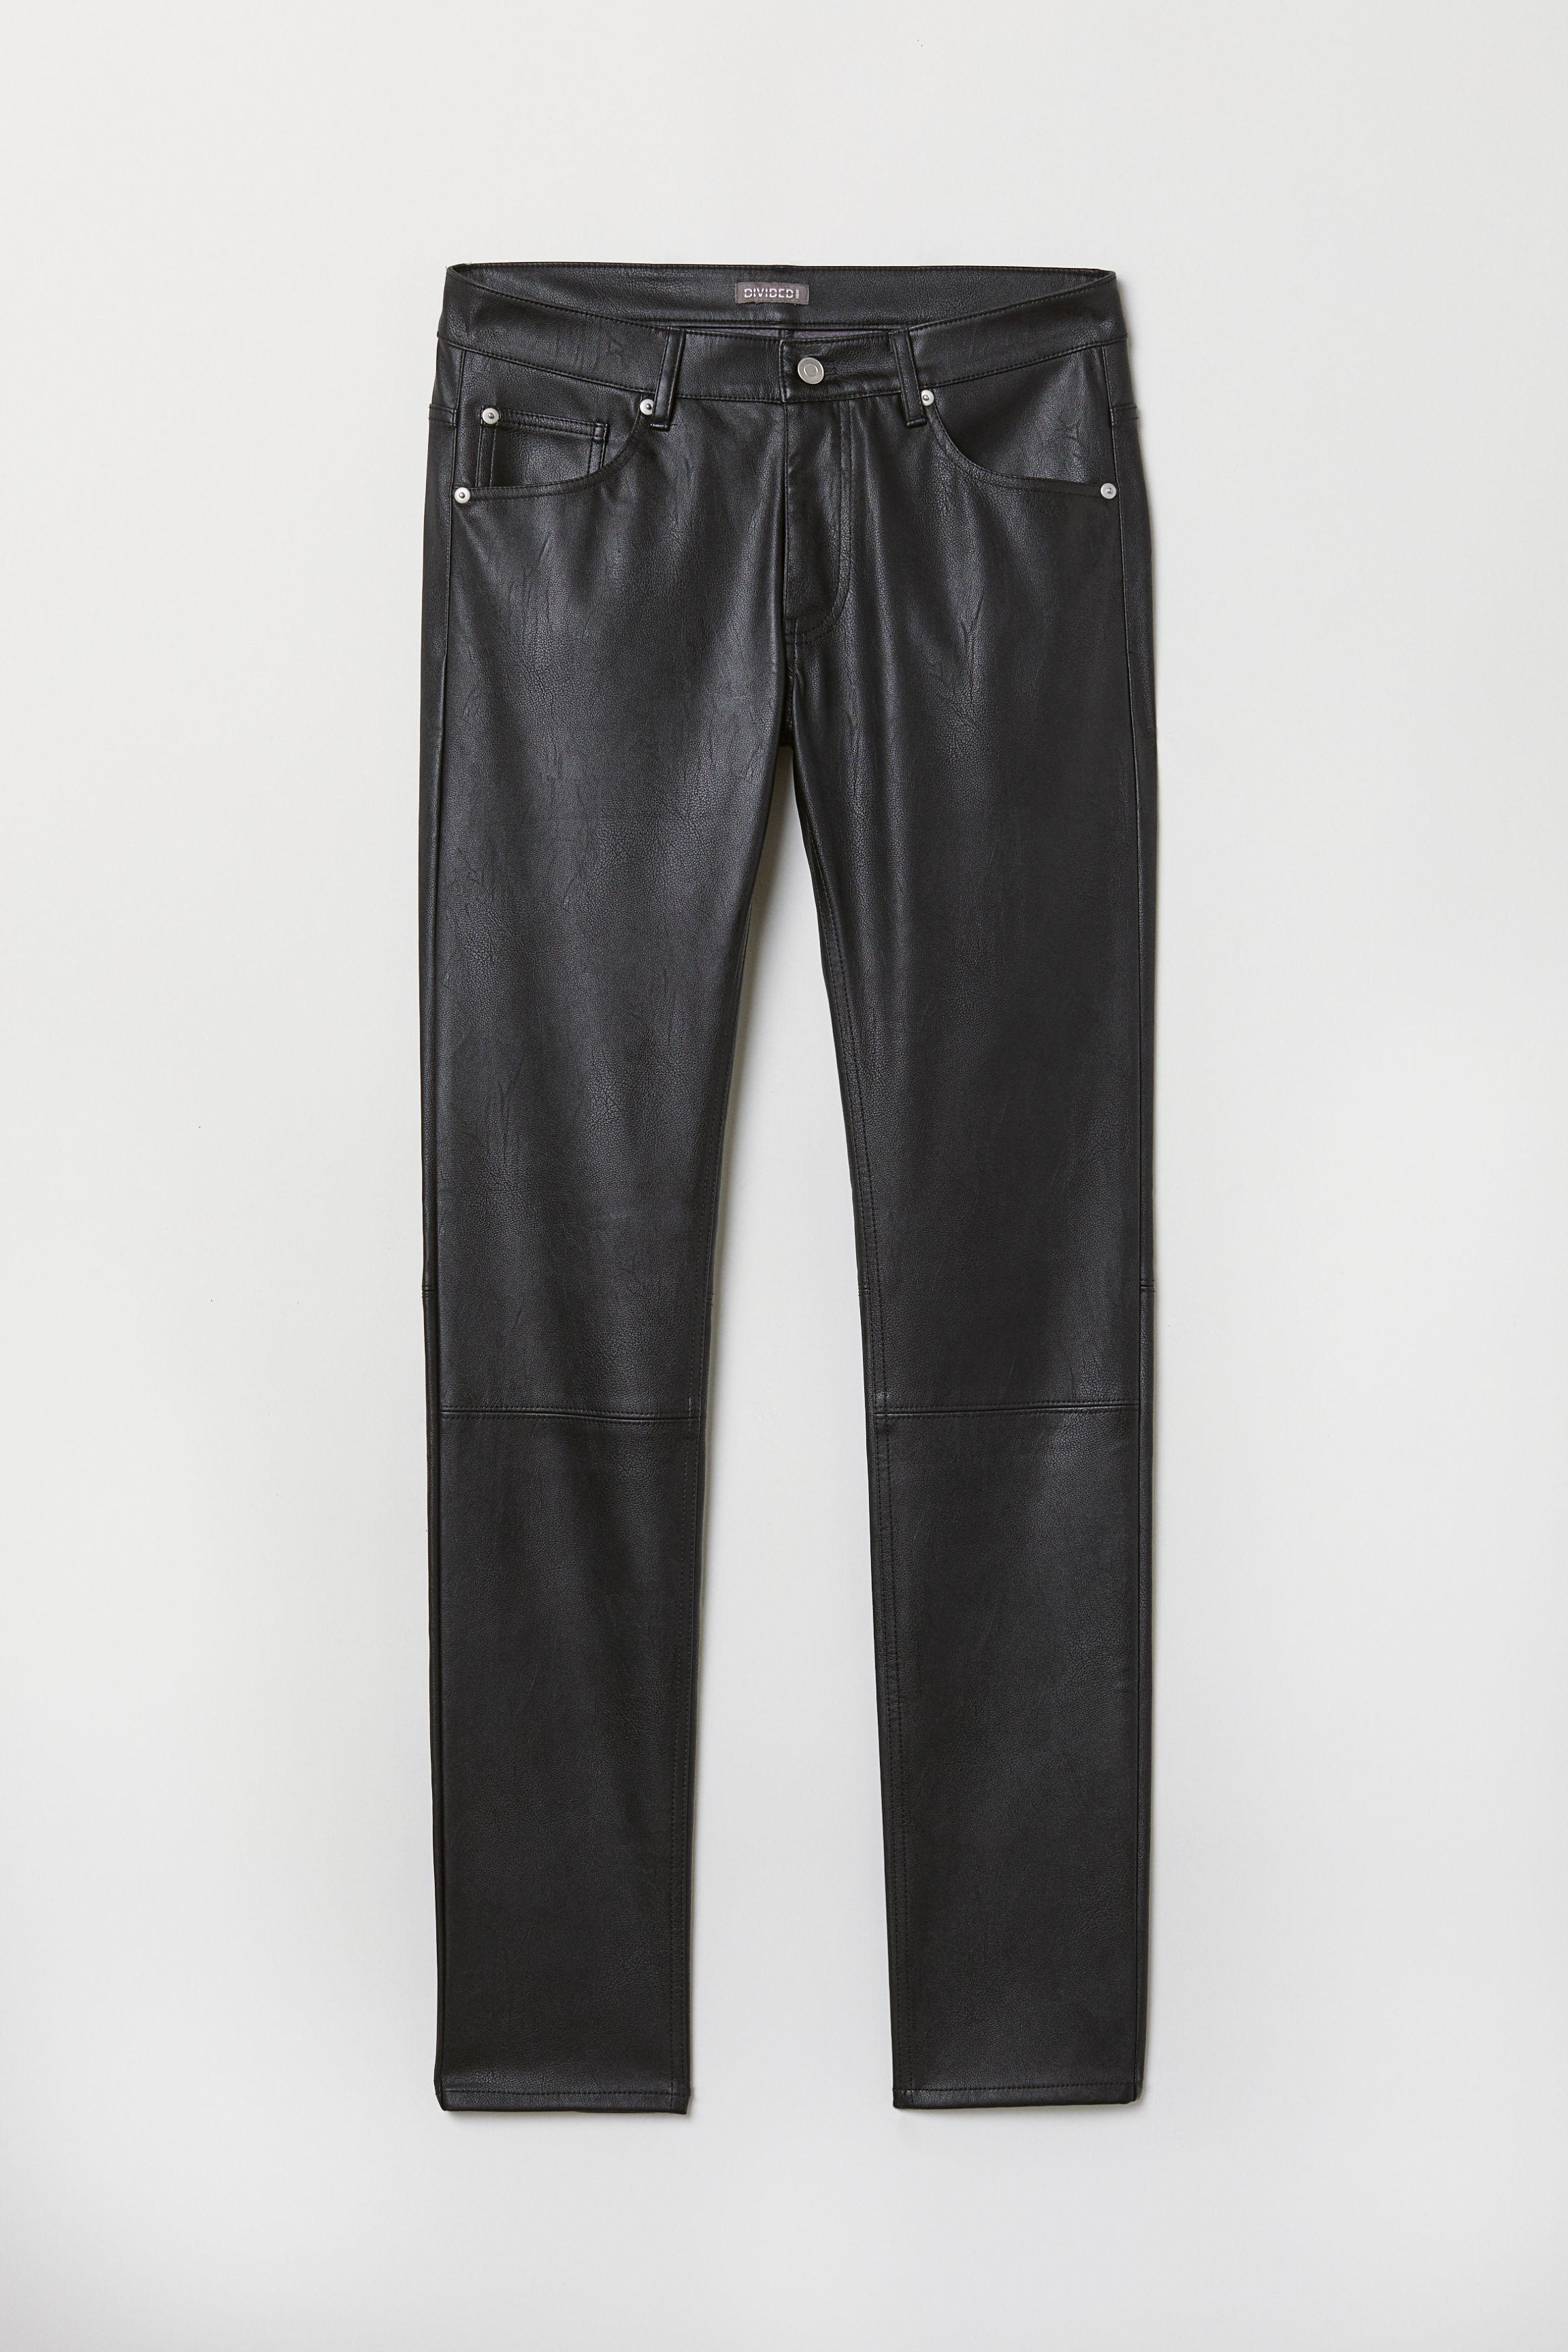 H Amp M Faux Leather Pants In Black For Men Lyst